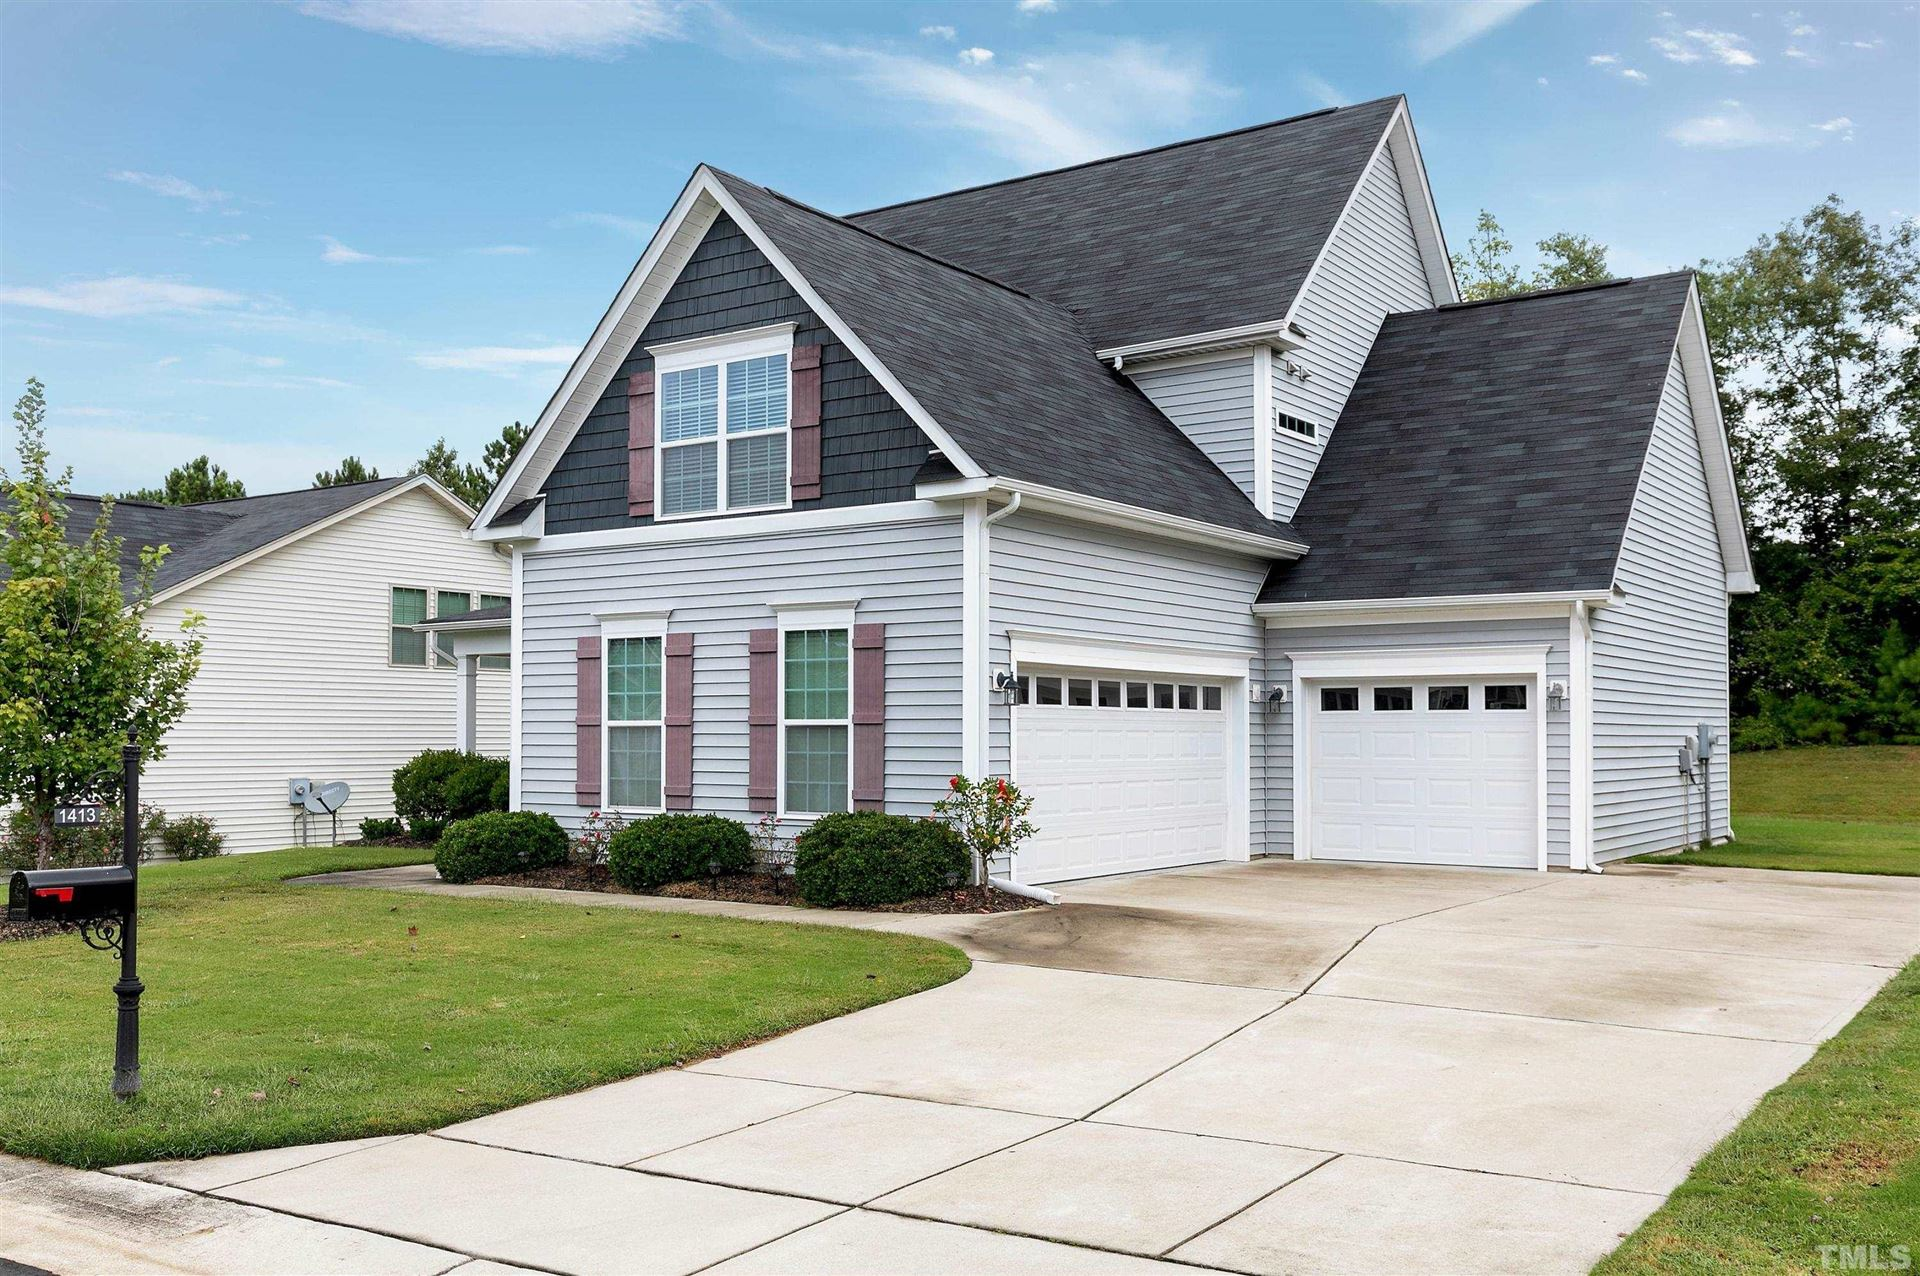 Photo of 1413 Stone Wealth Drive, Knightdale, NC 27545 (MLS # 2408842)